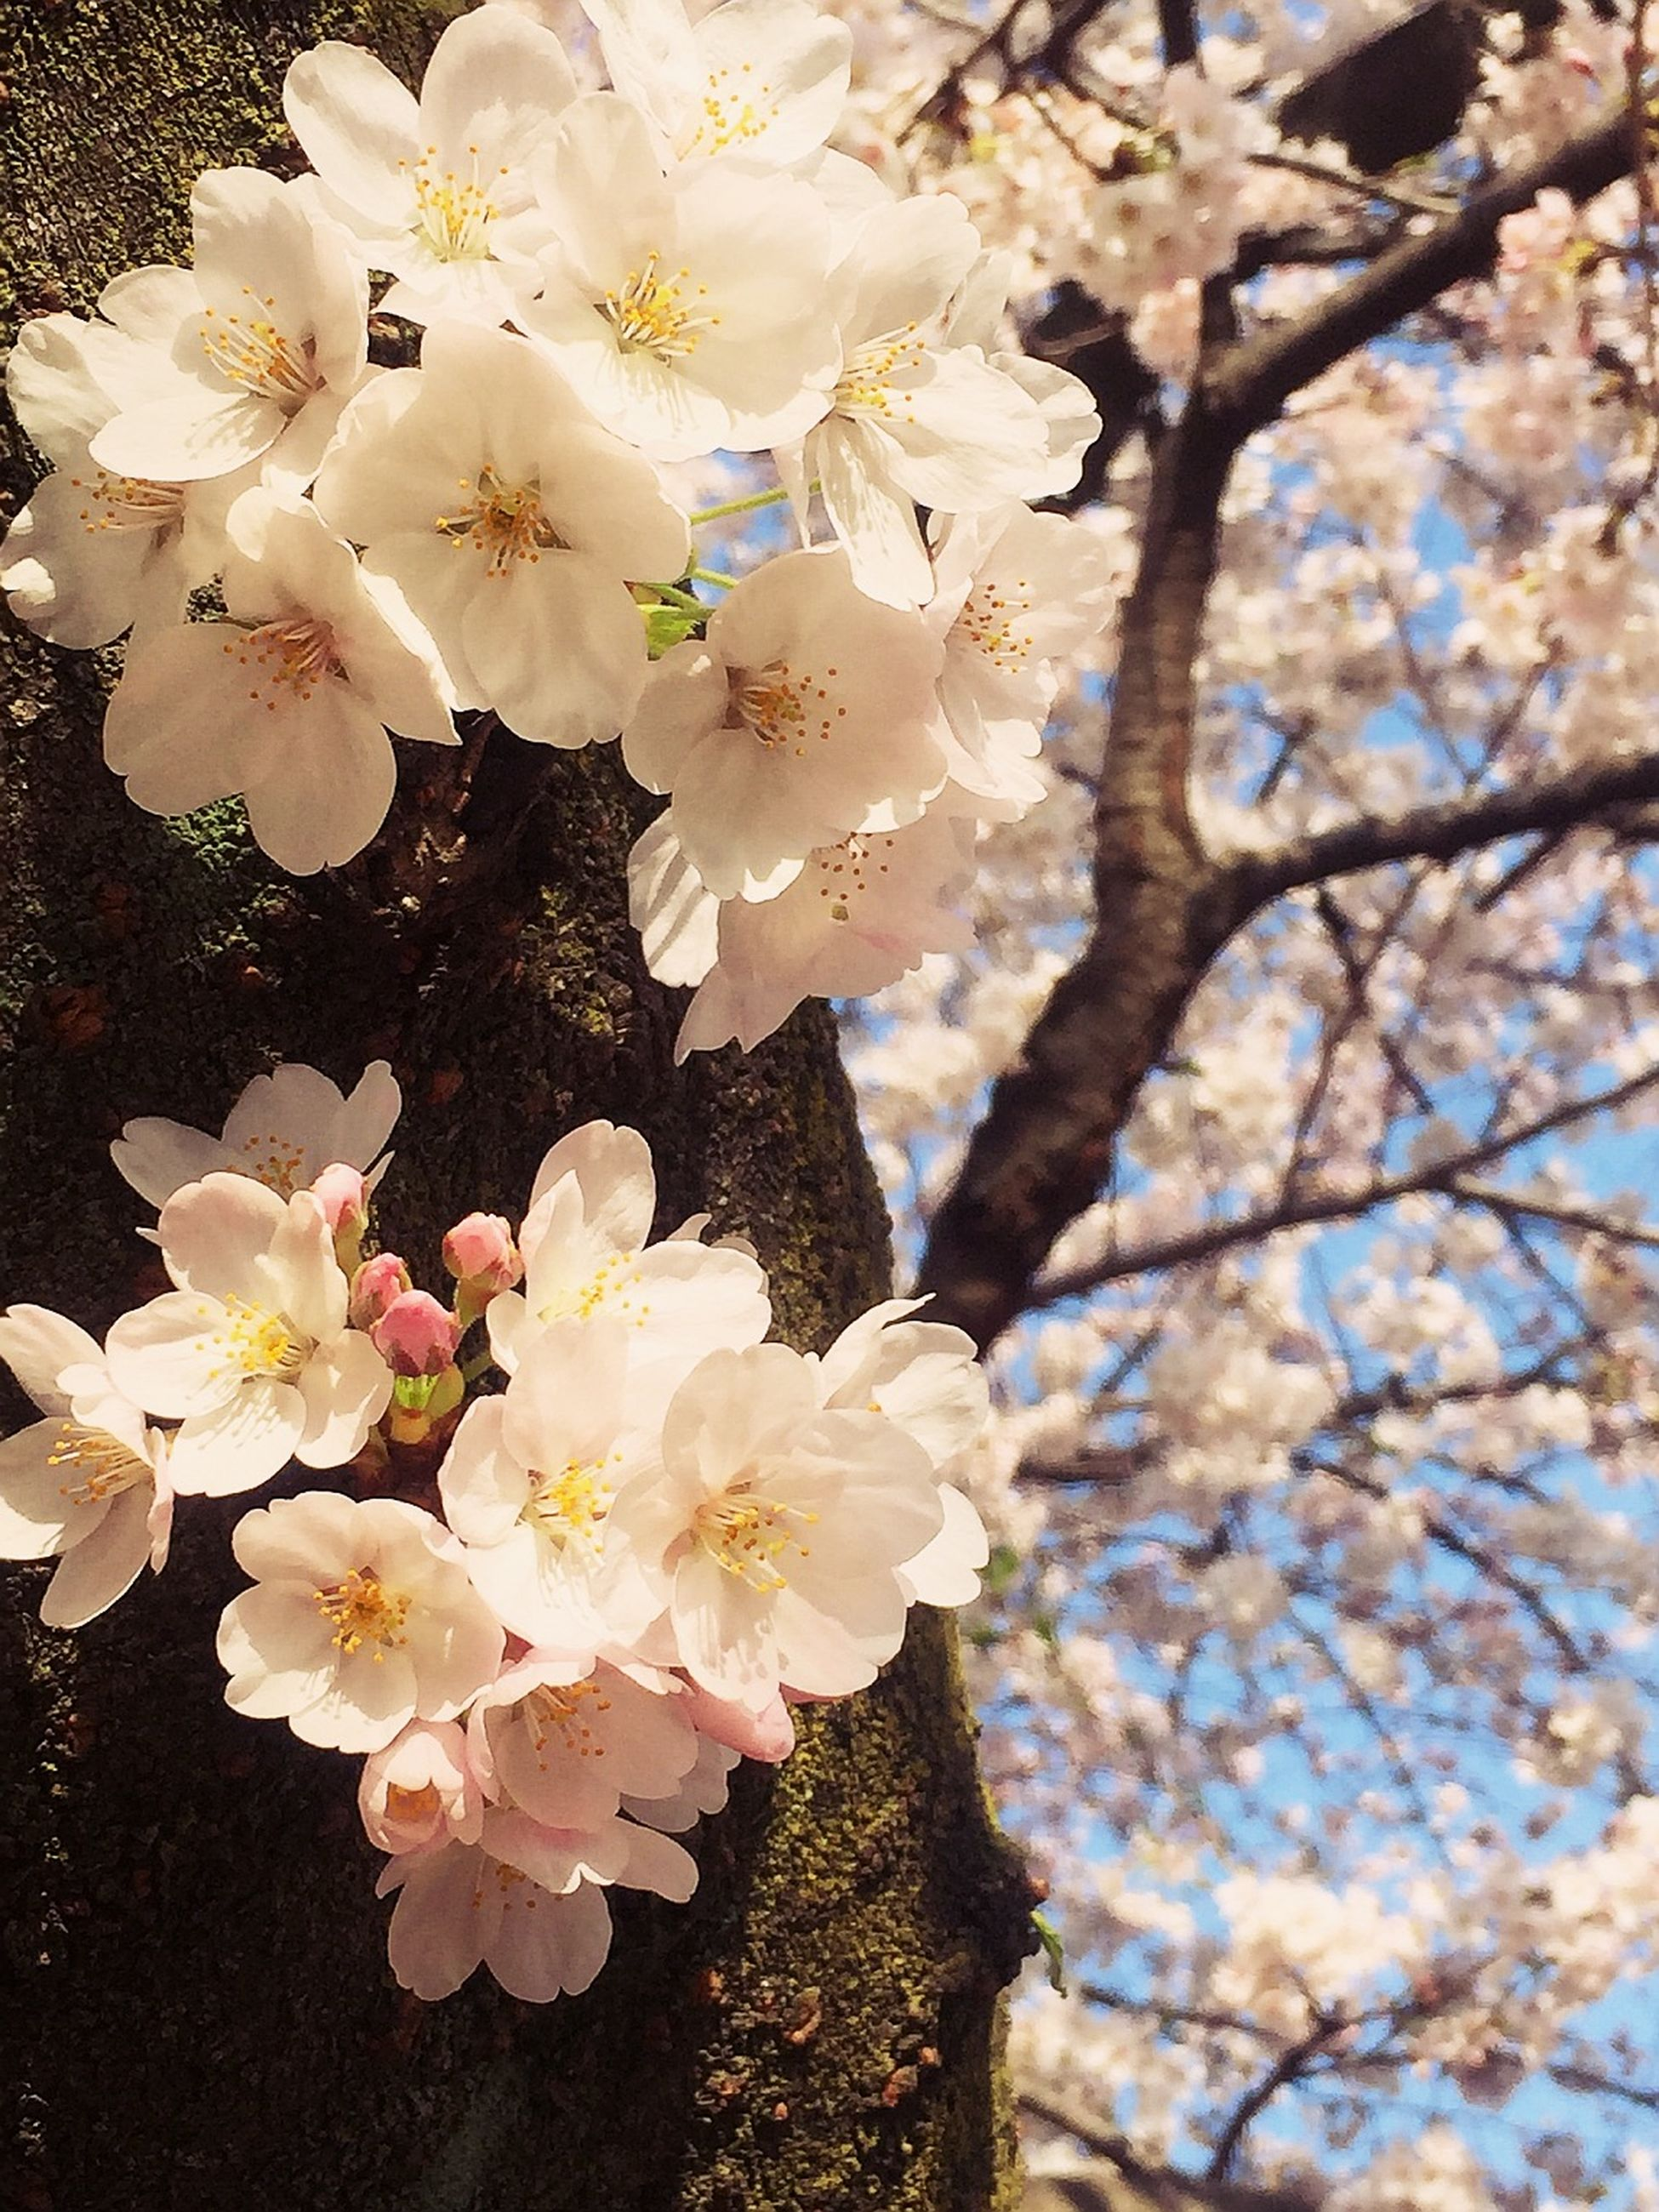 flower, freshness, fragility, petal, growth, beauty in nature, branch, blossom, cherry blossom, nature, flower head, tree, blooming, in bloom, white color, springtime, close-up, cherry tree, botany, pink color